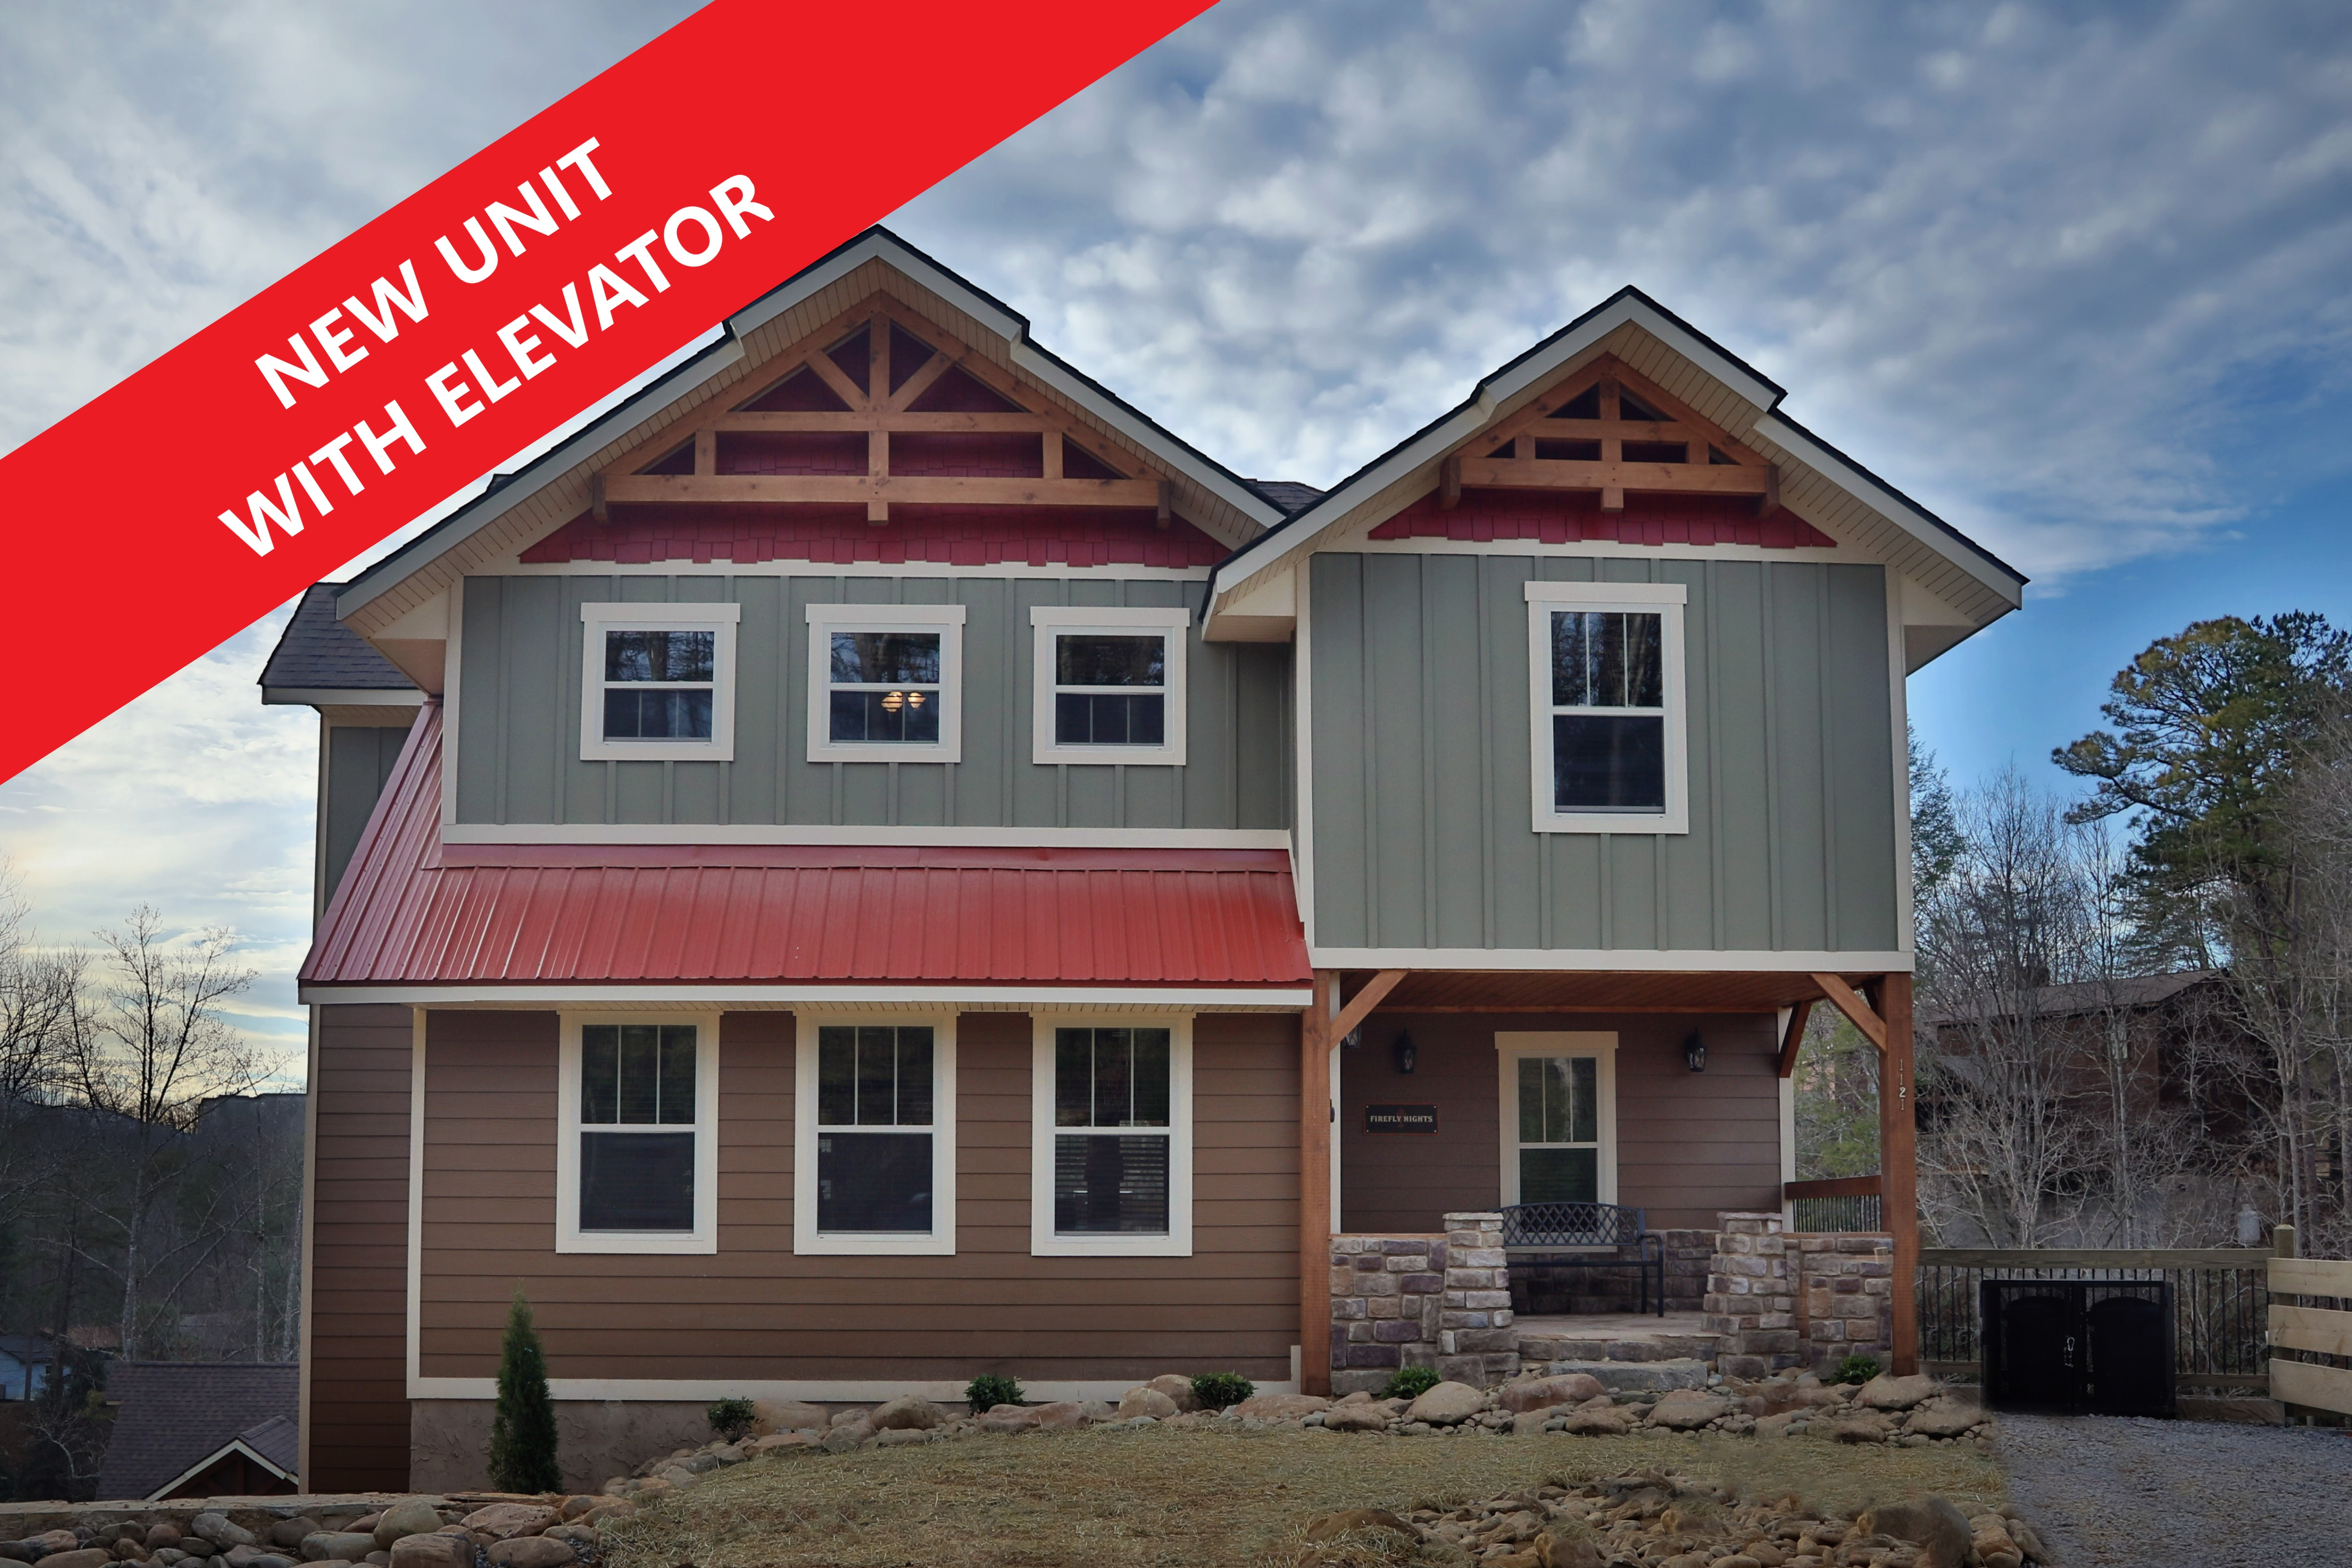 Firefly Nights Family House To Rent On Vacation 5 Bedroom Sleeps 12 Gatlinburg Tennessee 133247 Find Rentals